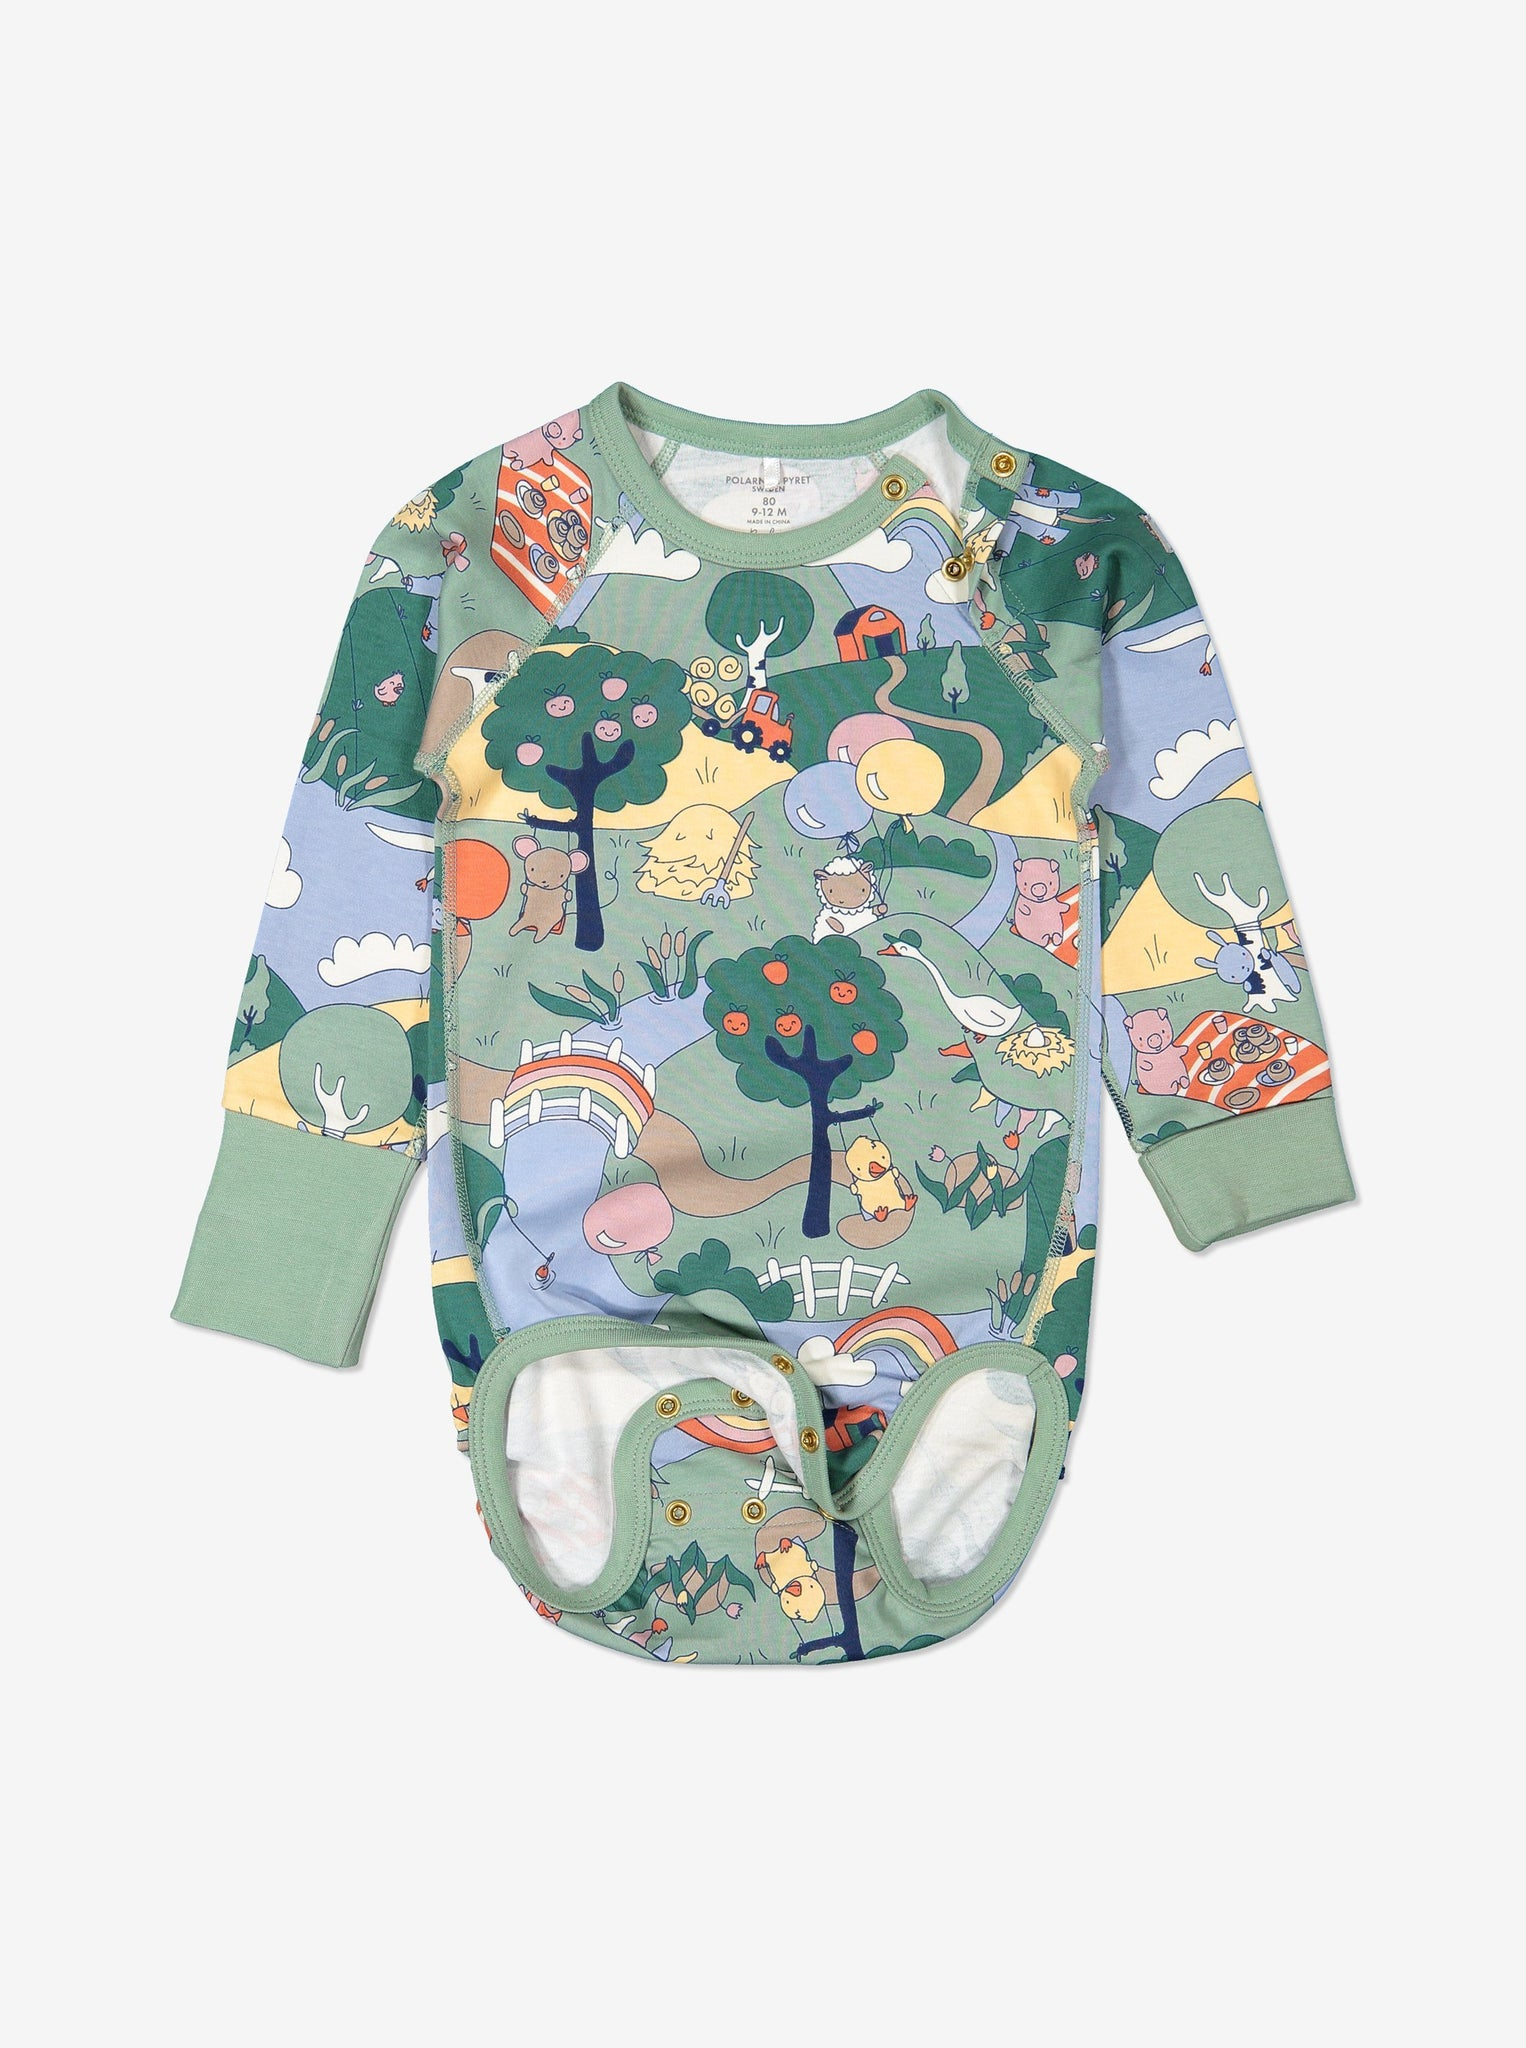 Unisex Green Organic Cotton Baby Bodysuit